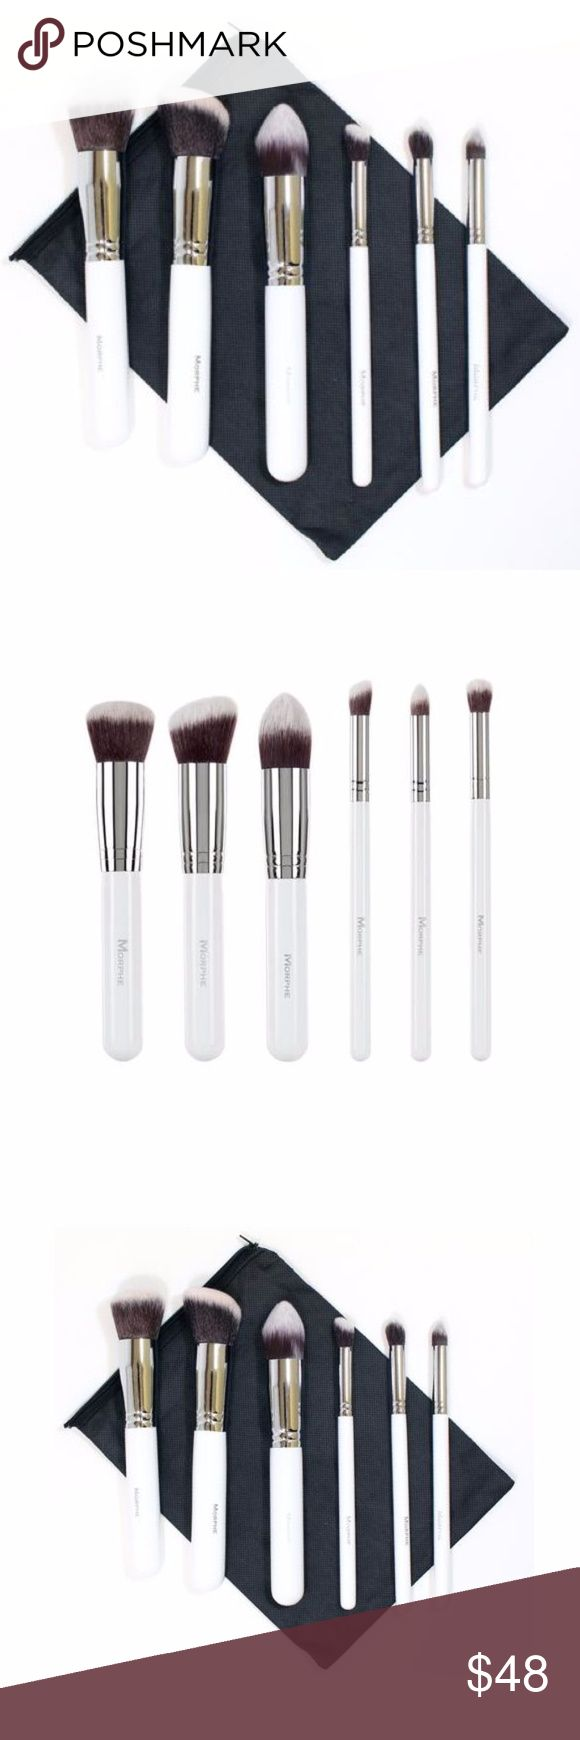 Six-Piece Deluxe Contour Set Exclusive White Handle Contour Brush Set Collection, which includes:   ★ 1 x Angled Buffer ★ 1 x Round Buffer ★ 1 x Pointed Contour Buffer ★ 1 x Mini Angled Buffer ★ 1 x Mini Round Buffer ★ 1 x Mini Pointed Contour ★ 1 x Black Mesh Brush Bag Morphe Makeup Brushes & Tools